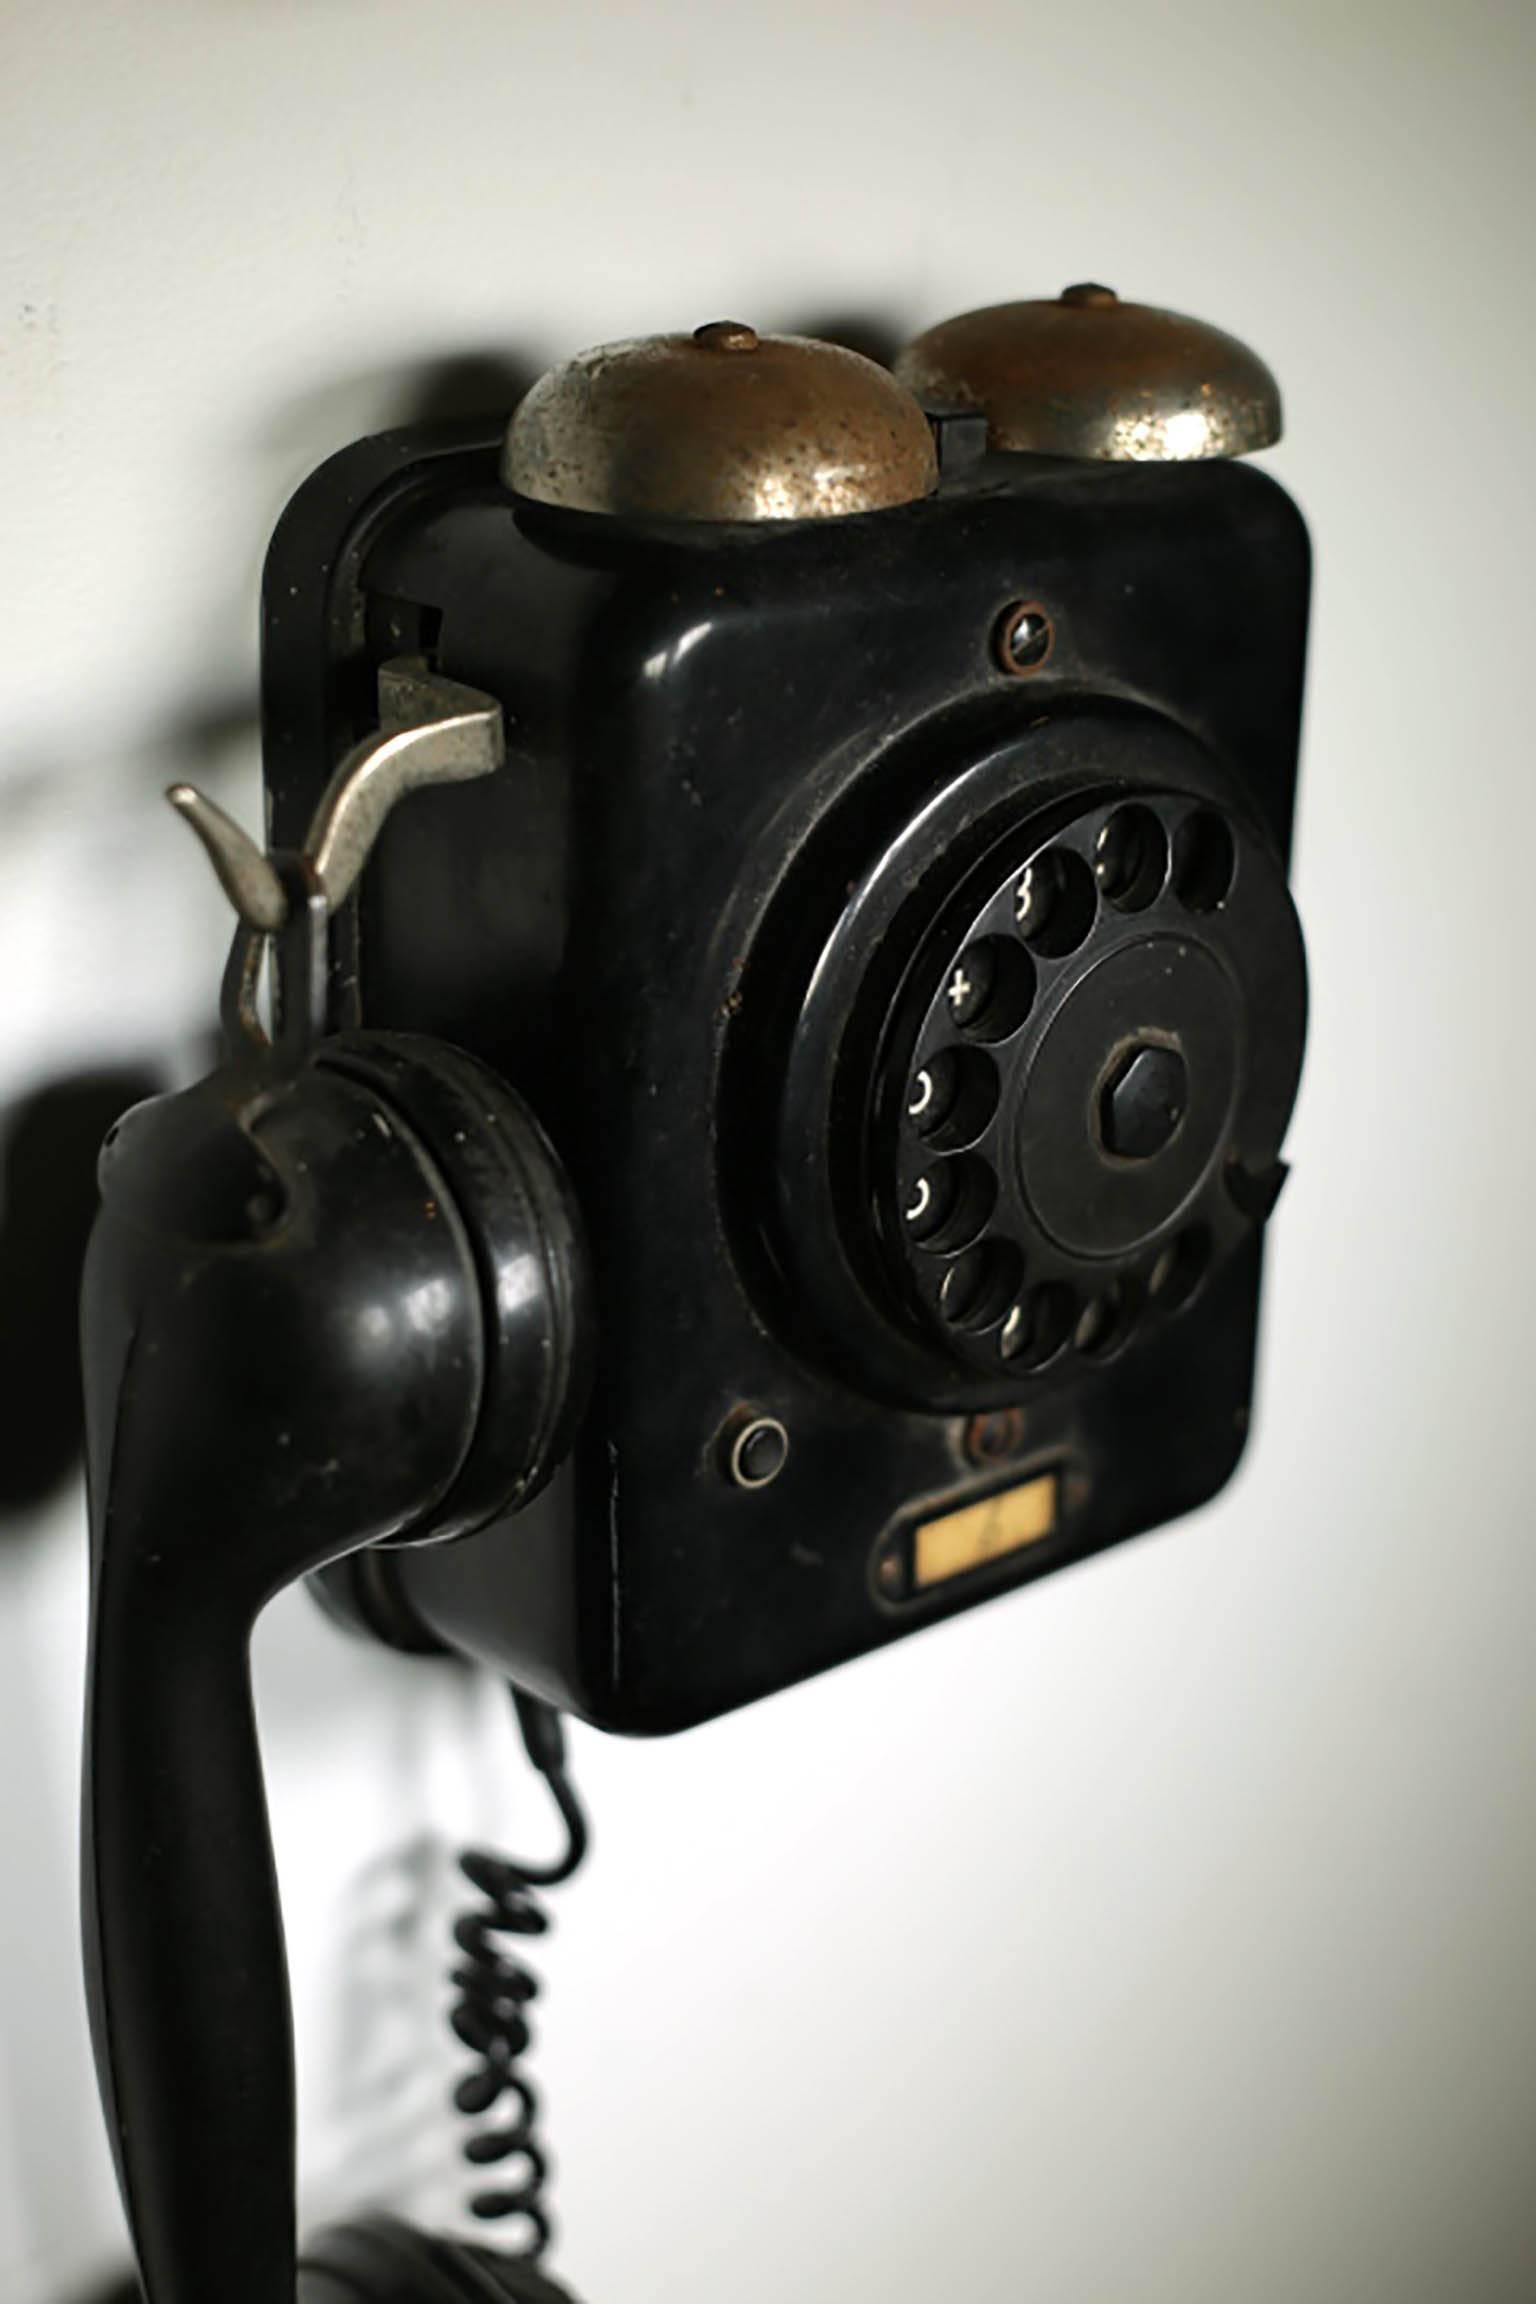 medium resolution of metal body with a bakelite rotary dial telephone circa 1950s might possible work if